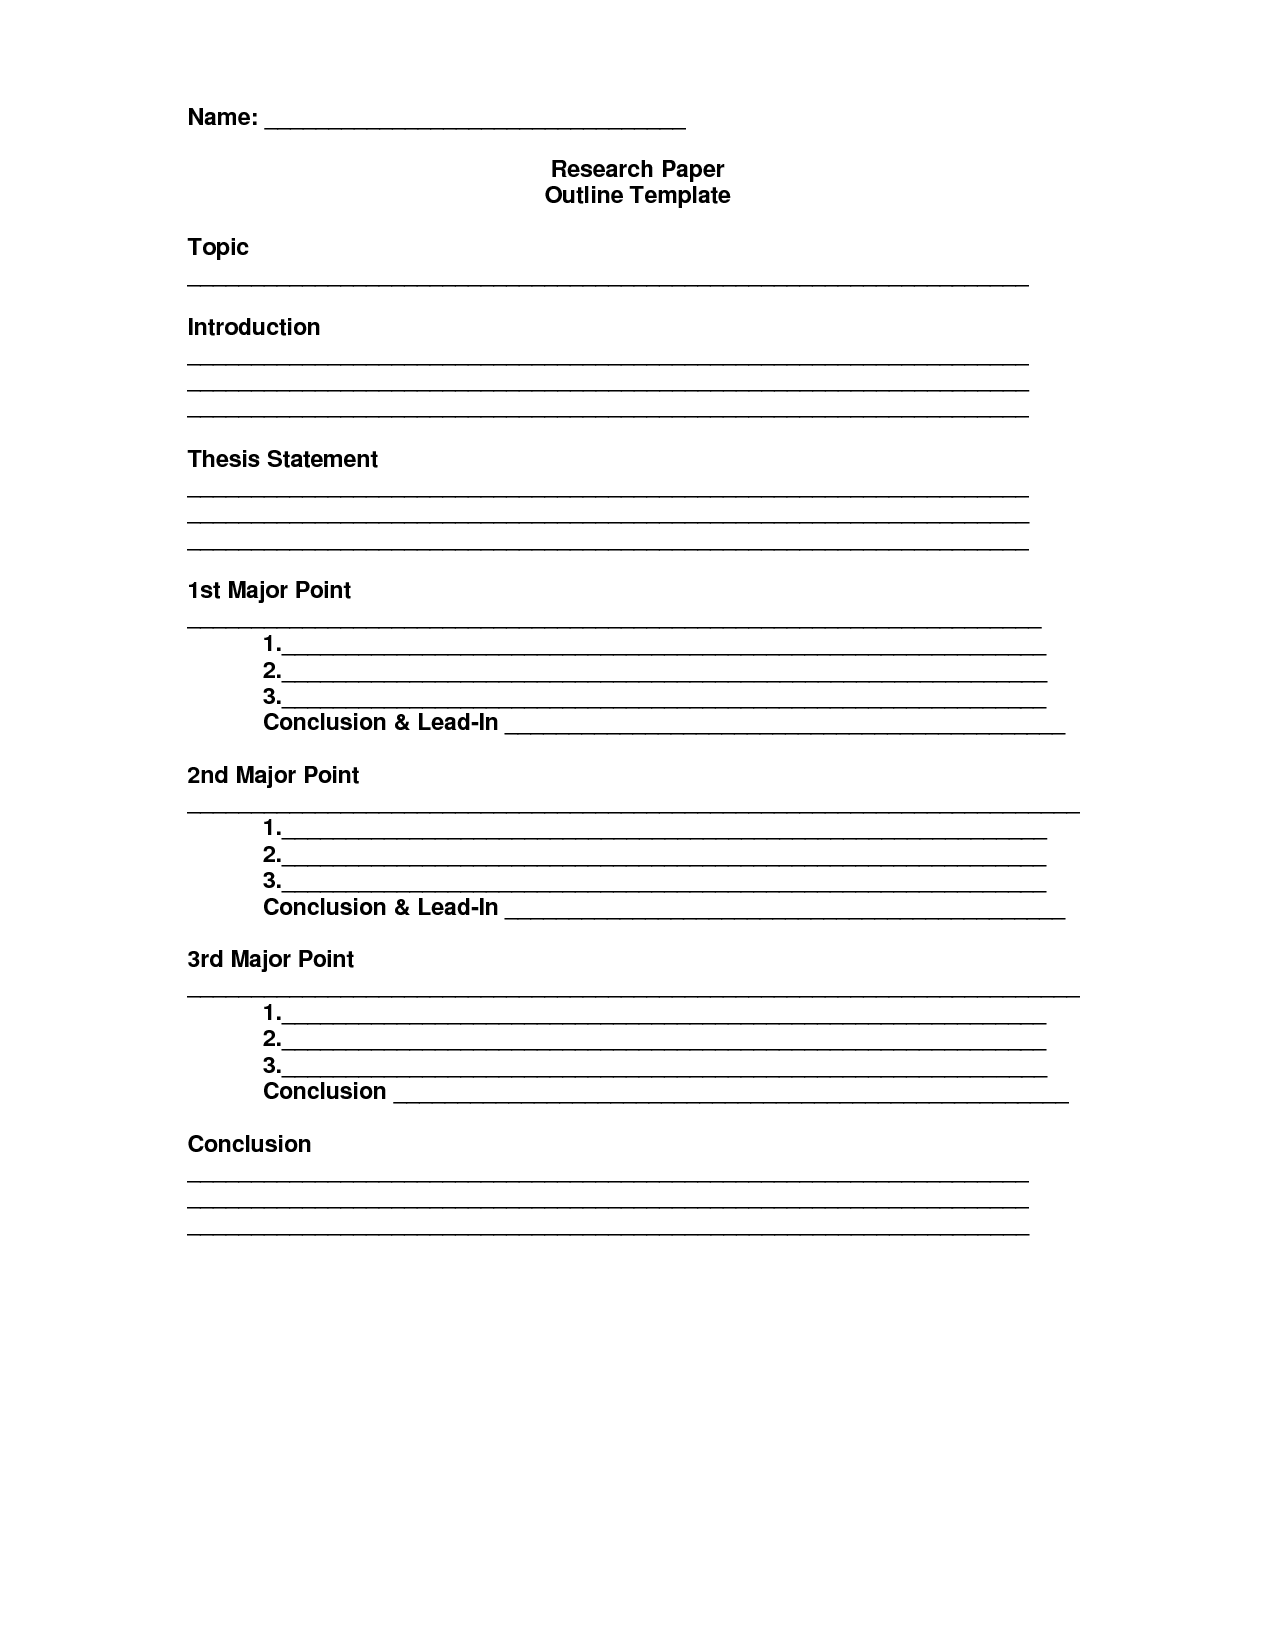 b>Essay</b> <b>Outline</b> <b>Template</b> - DOC | Just perfect ...